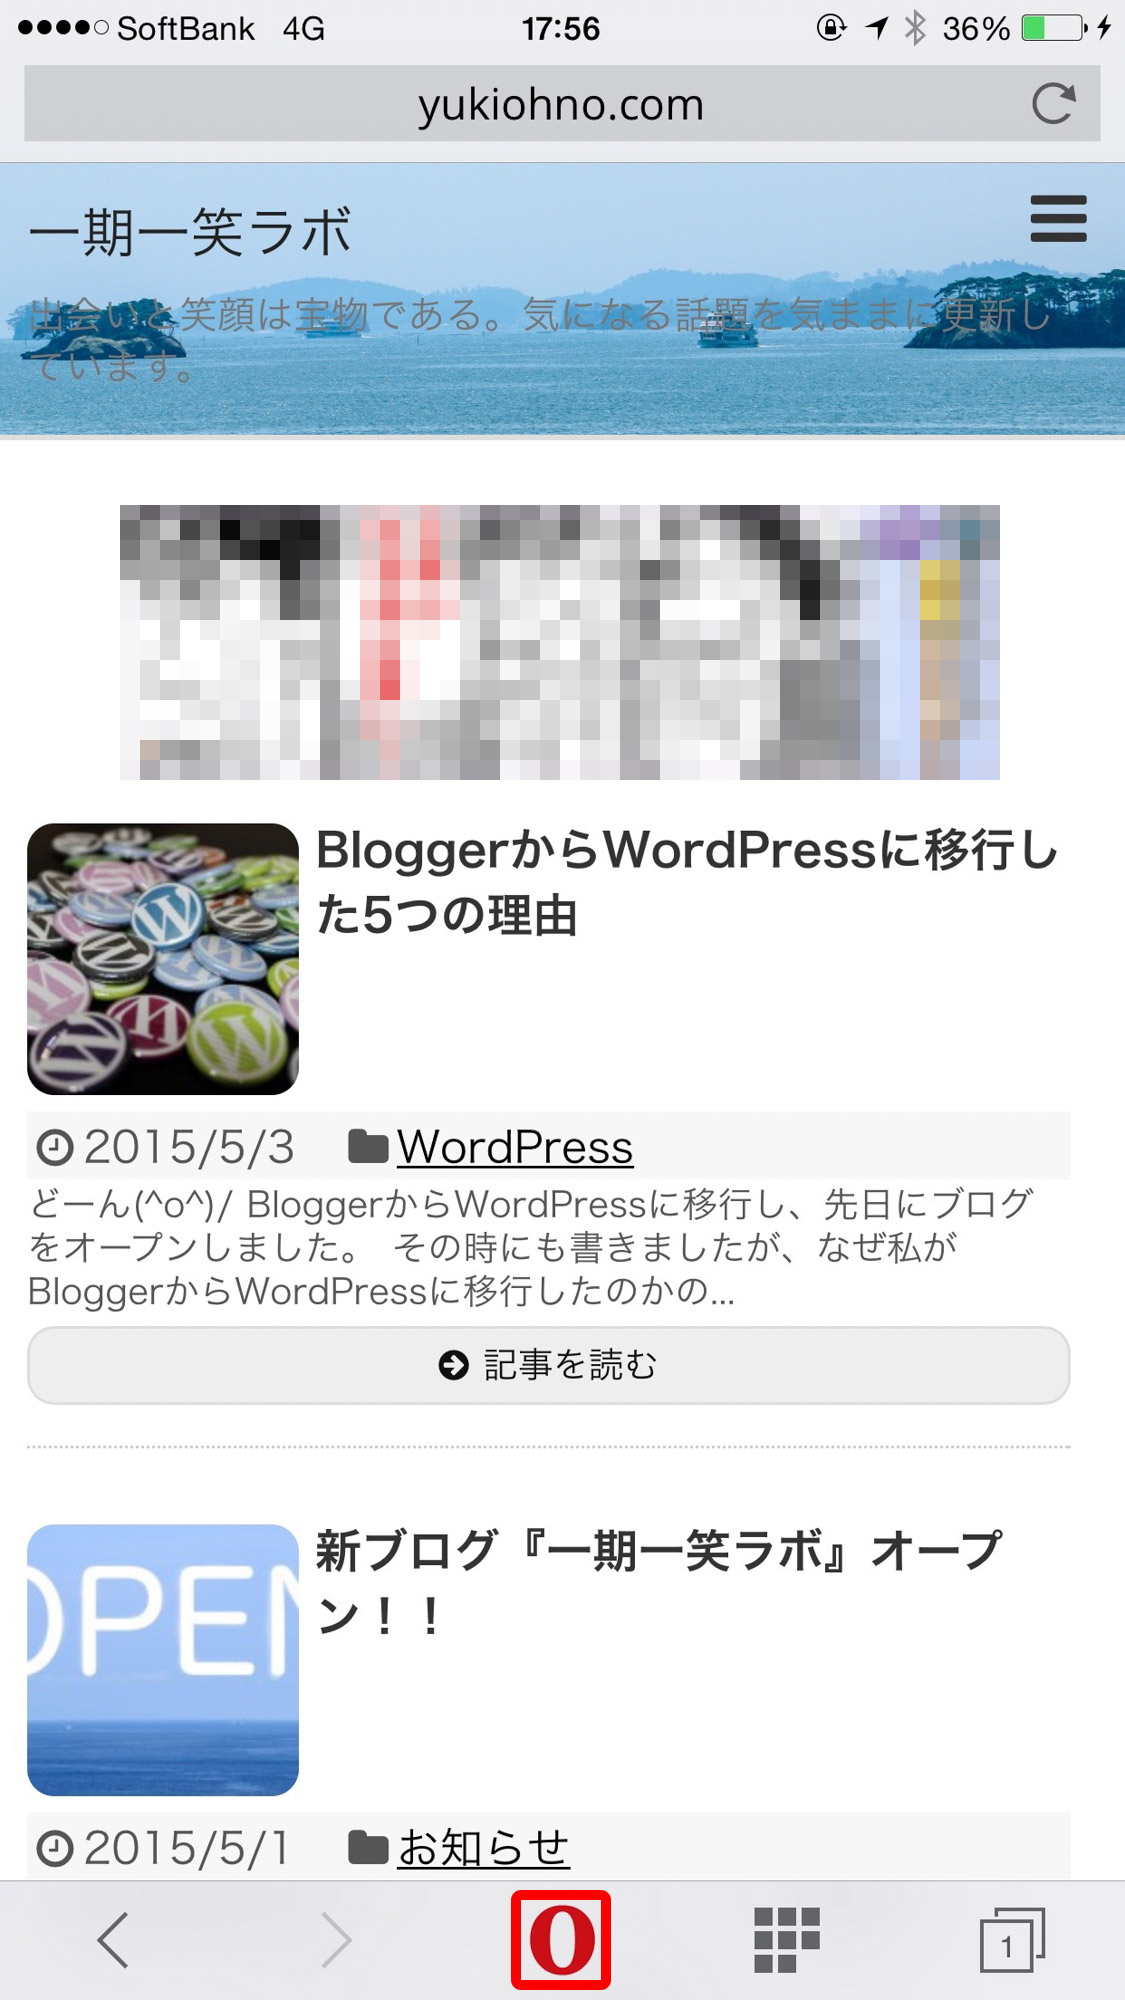 browser-wp-4258